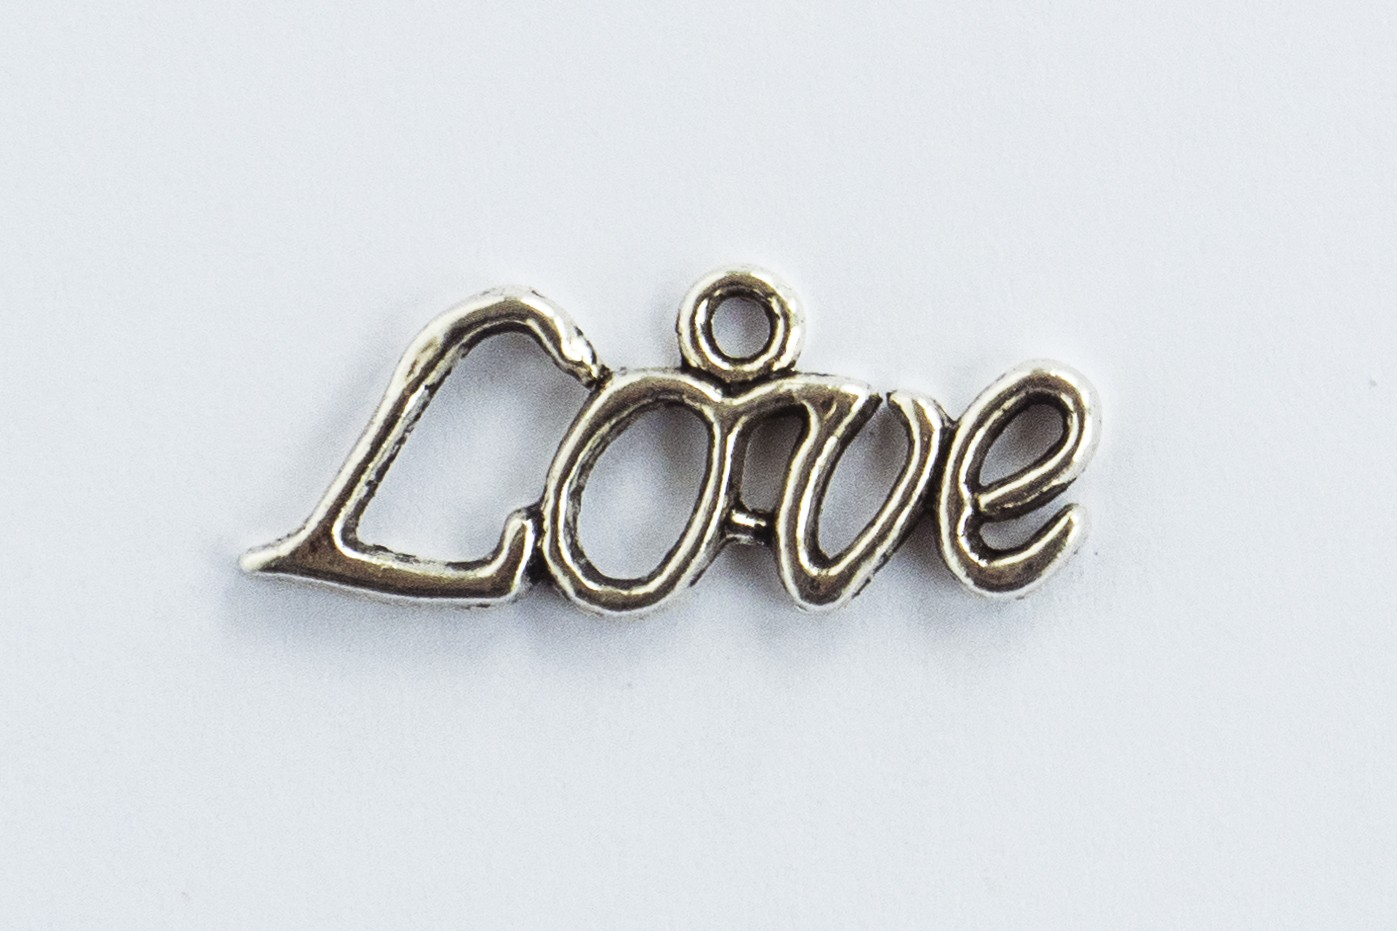 Love Silver Tone Charms - 3 Pack